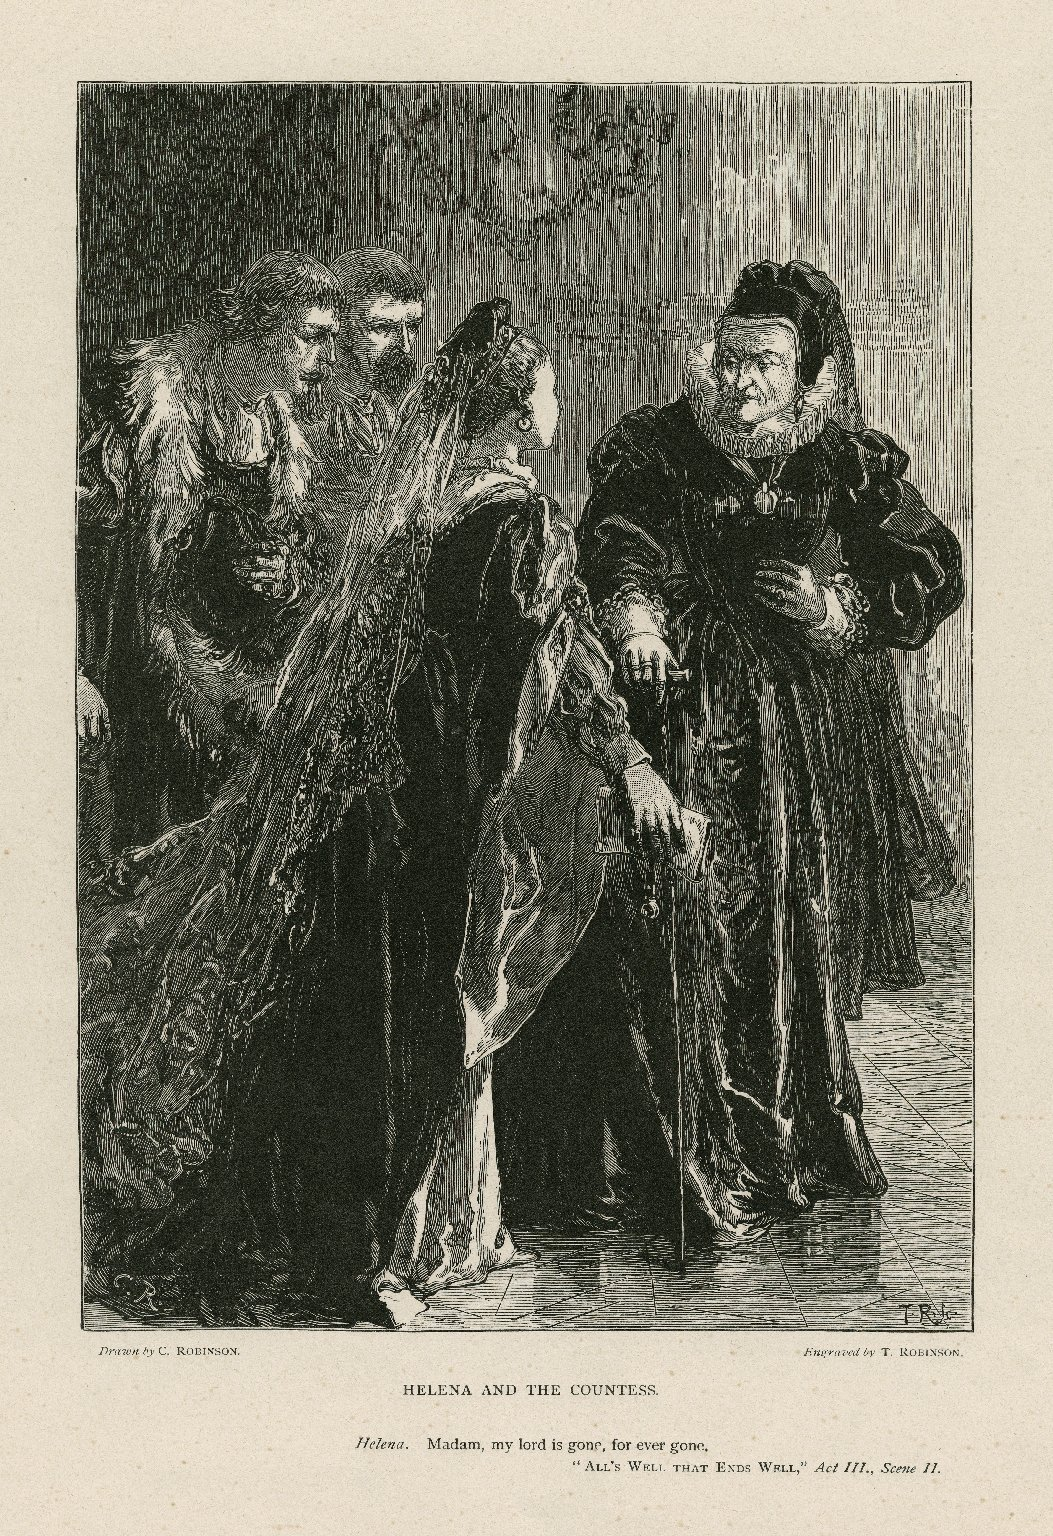 Helena and the Countess [graphic] : Helena: Madam, my lord is gone, for ever gone : All's well that ends well, act III, scene II / drawn by C. Robinson ; engraved by T. Robinson.